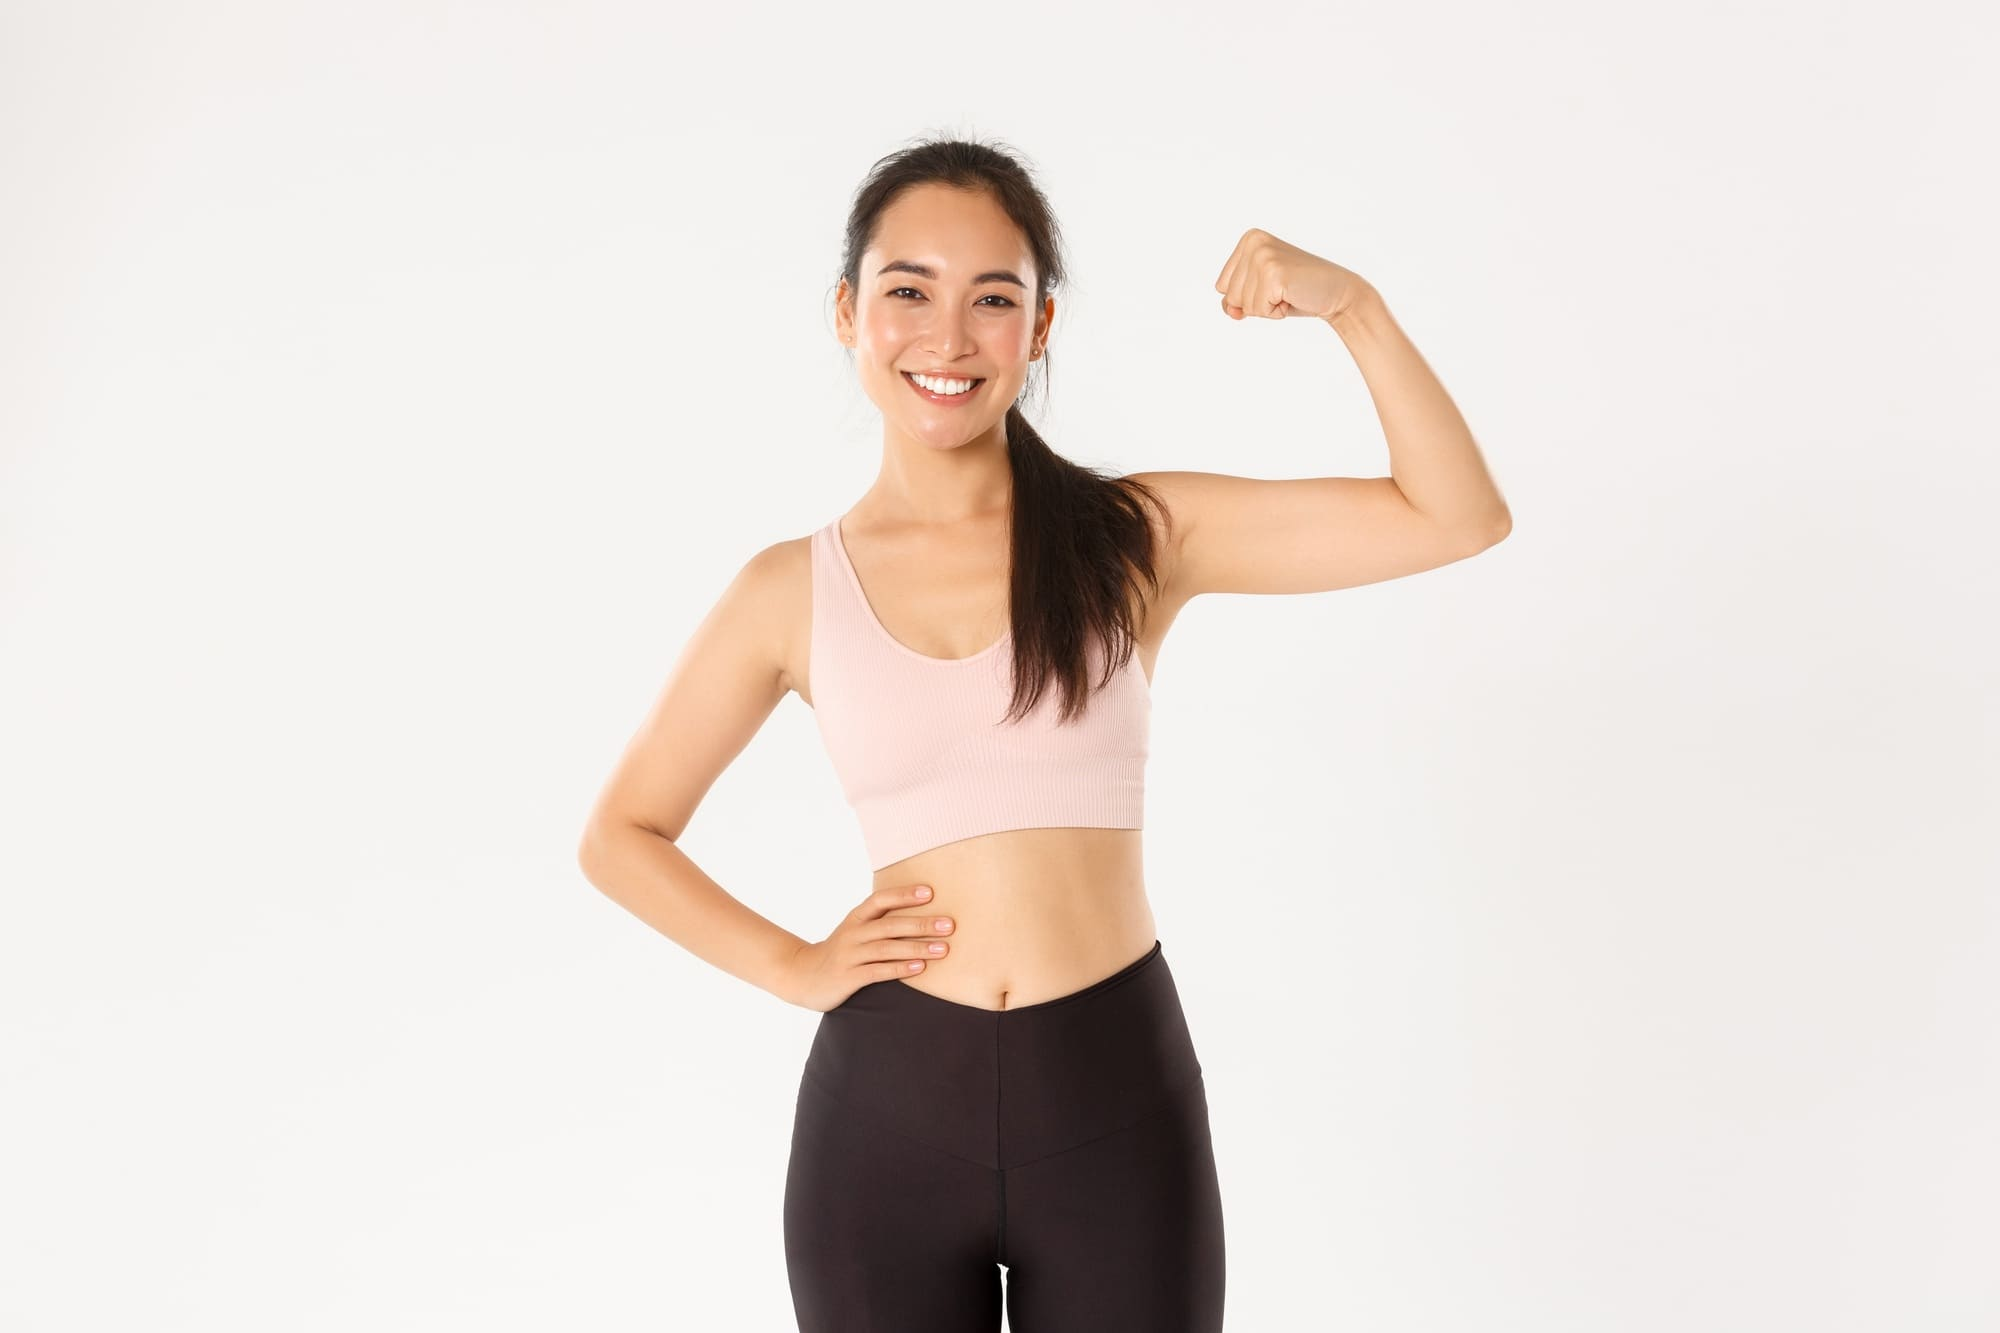 sport-wellbeing-and-active-lifestyle-concept-portrait-of-smiling-slim-and-strong-asian-fitness-girl-personal-workout-trainer-showing-muscles-flexing-biceps-and-look-proud-white-background (1)